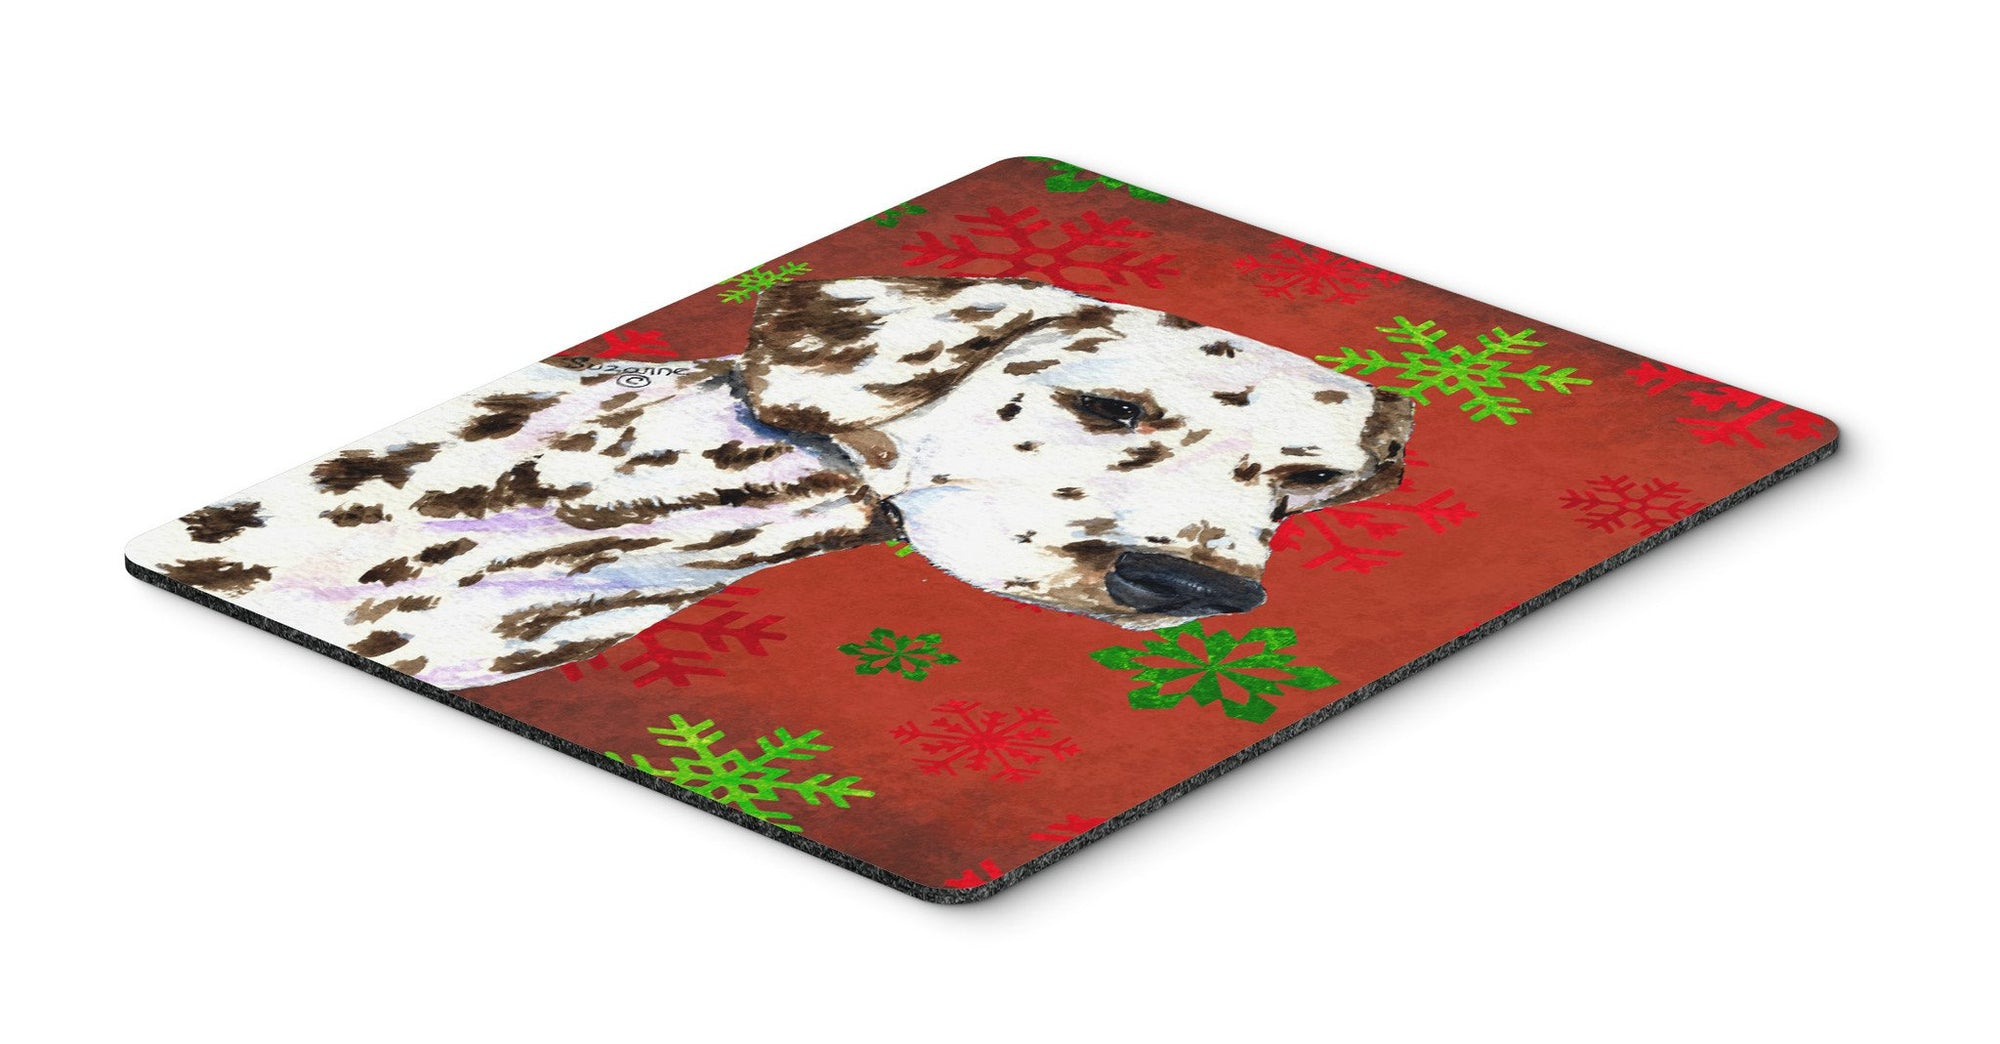 Dalmatian Red and Green Snowflakes Christmas Mouse Pad, Hot Pad or Trivet by Caroline's Treasures